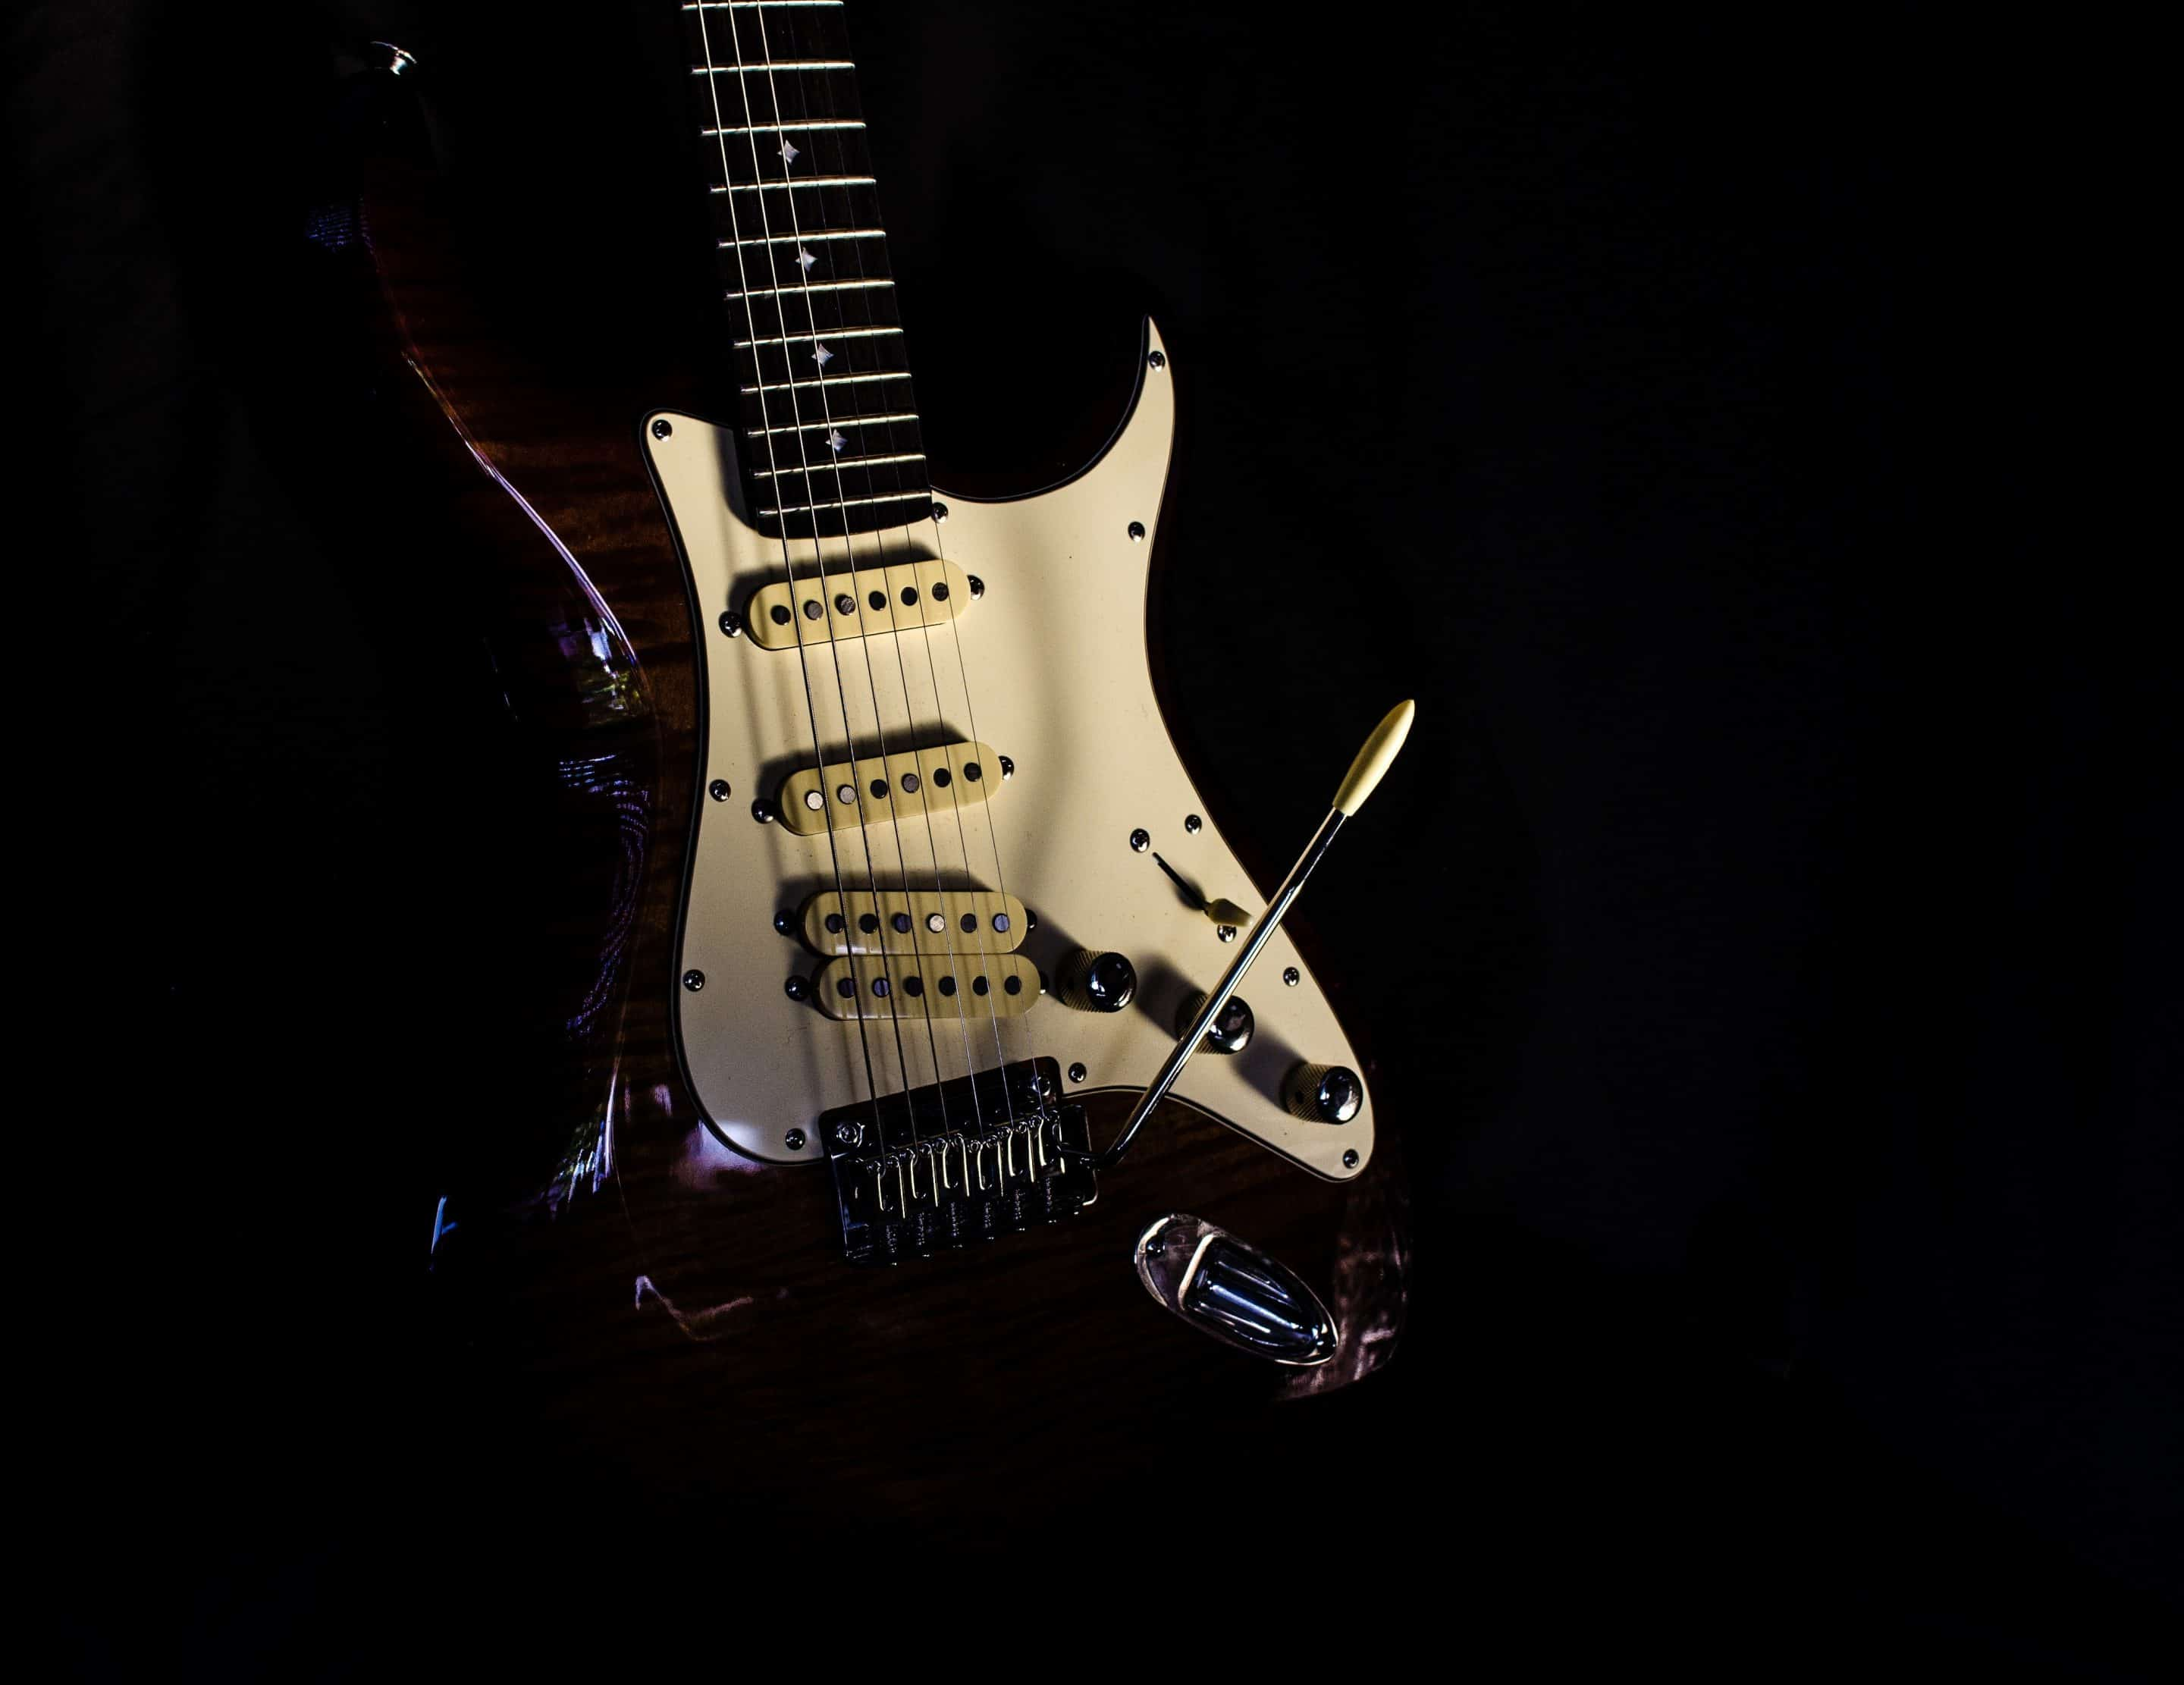 How to learn electric guitar online